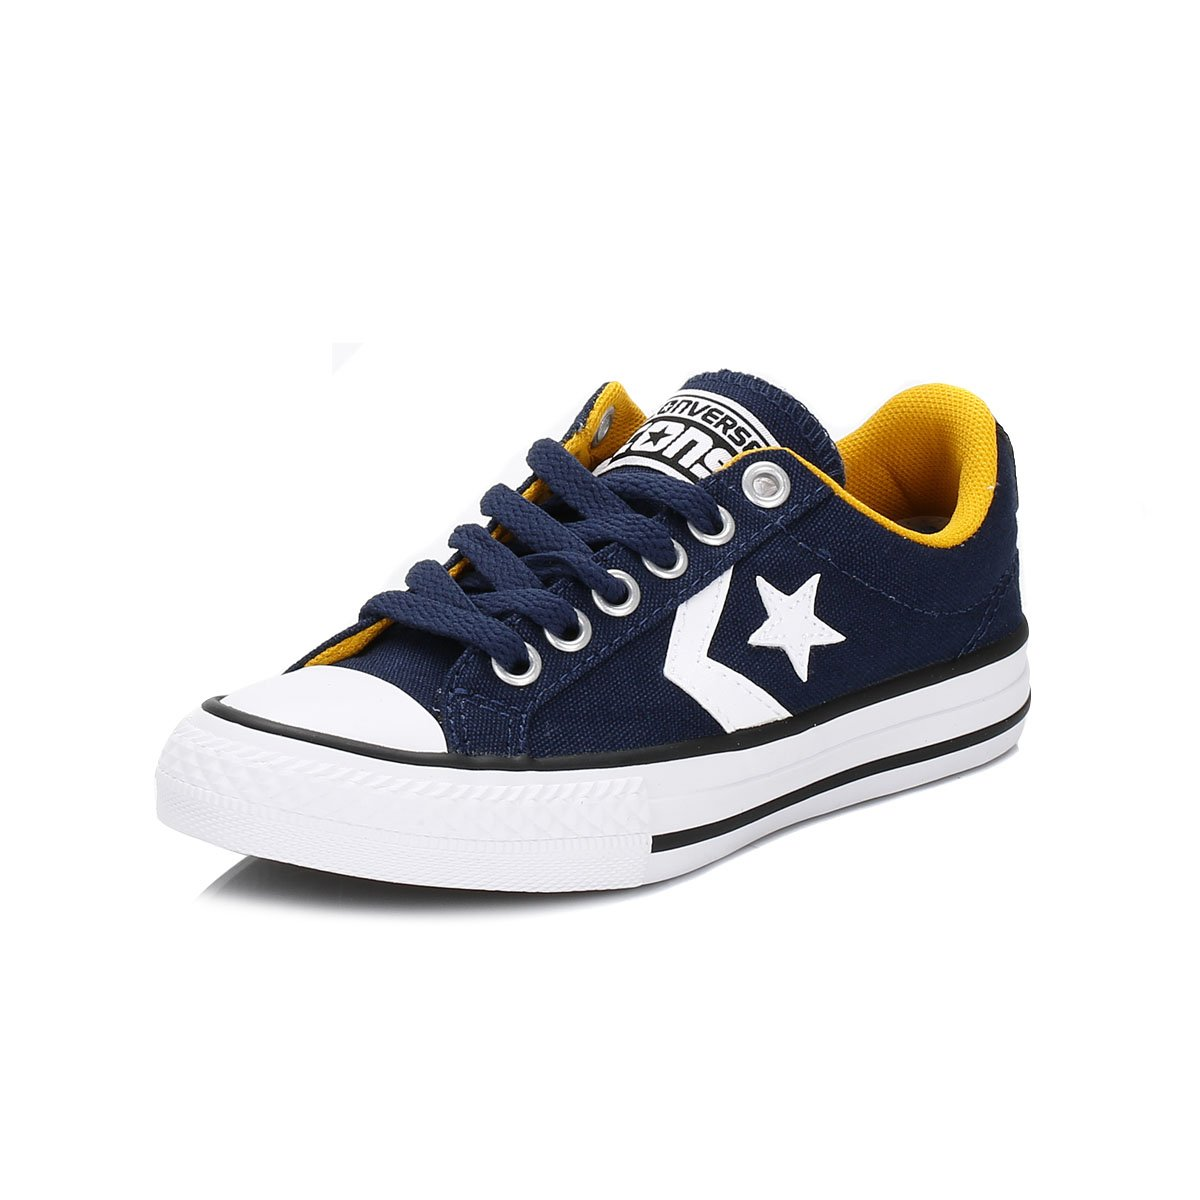 Converse Sp Lace Ox Unisex Kids' Low-Top Sneakers